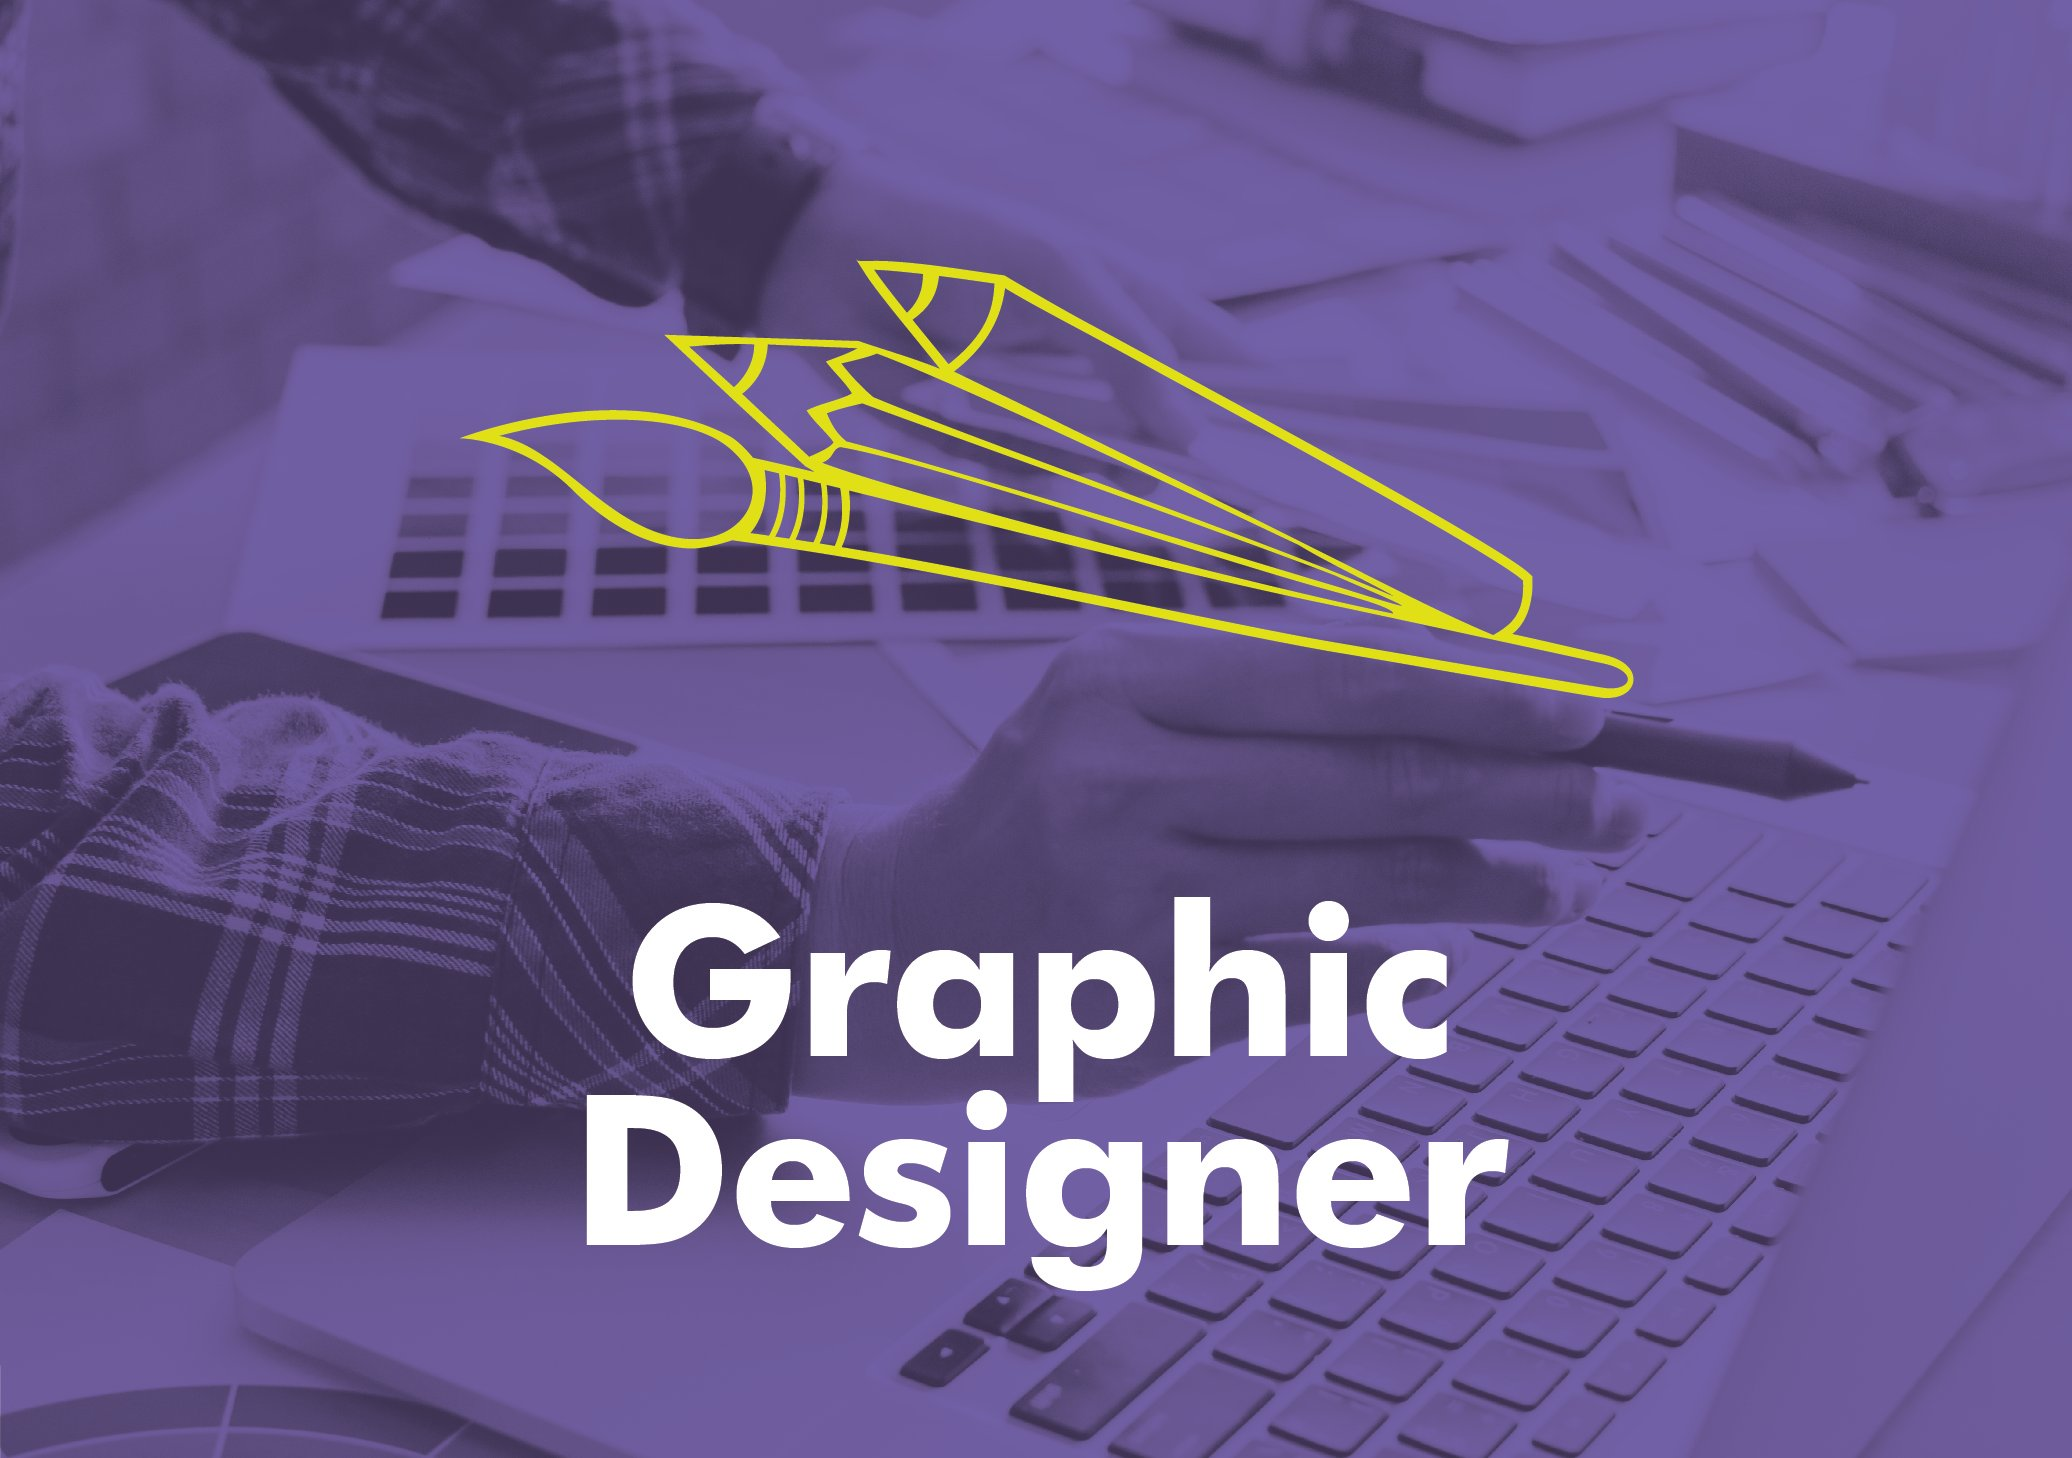 Graphic Designer Job Description and Salary | Robert Half